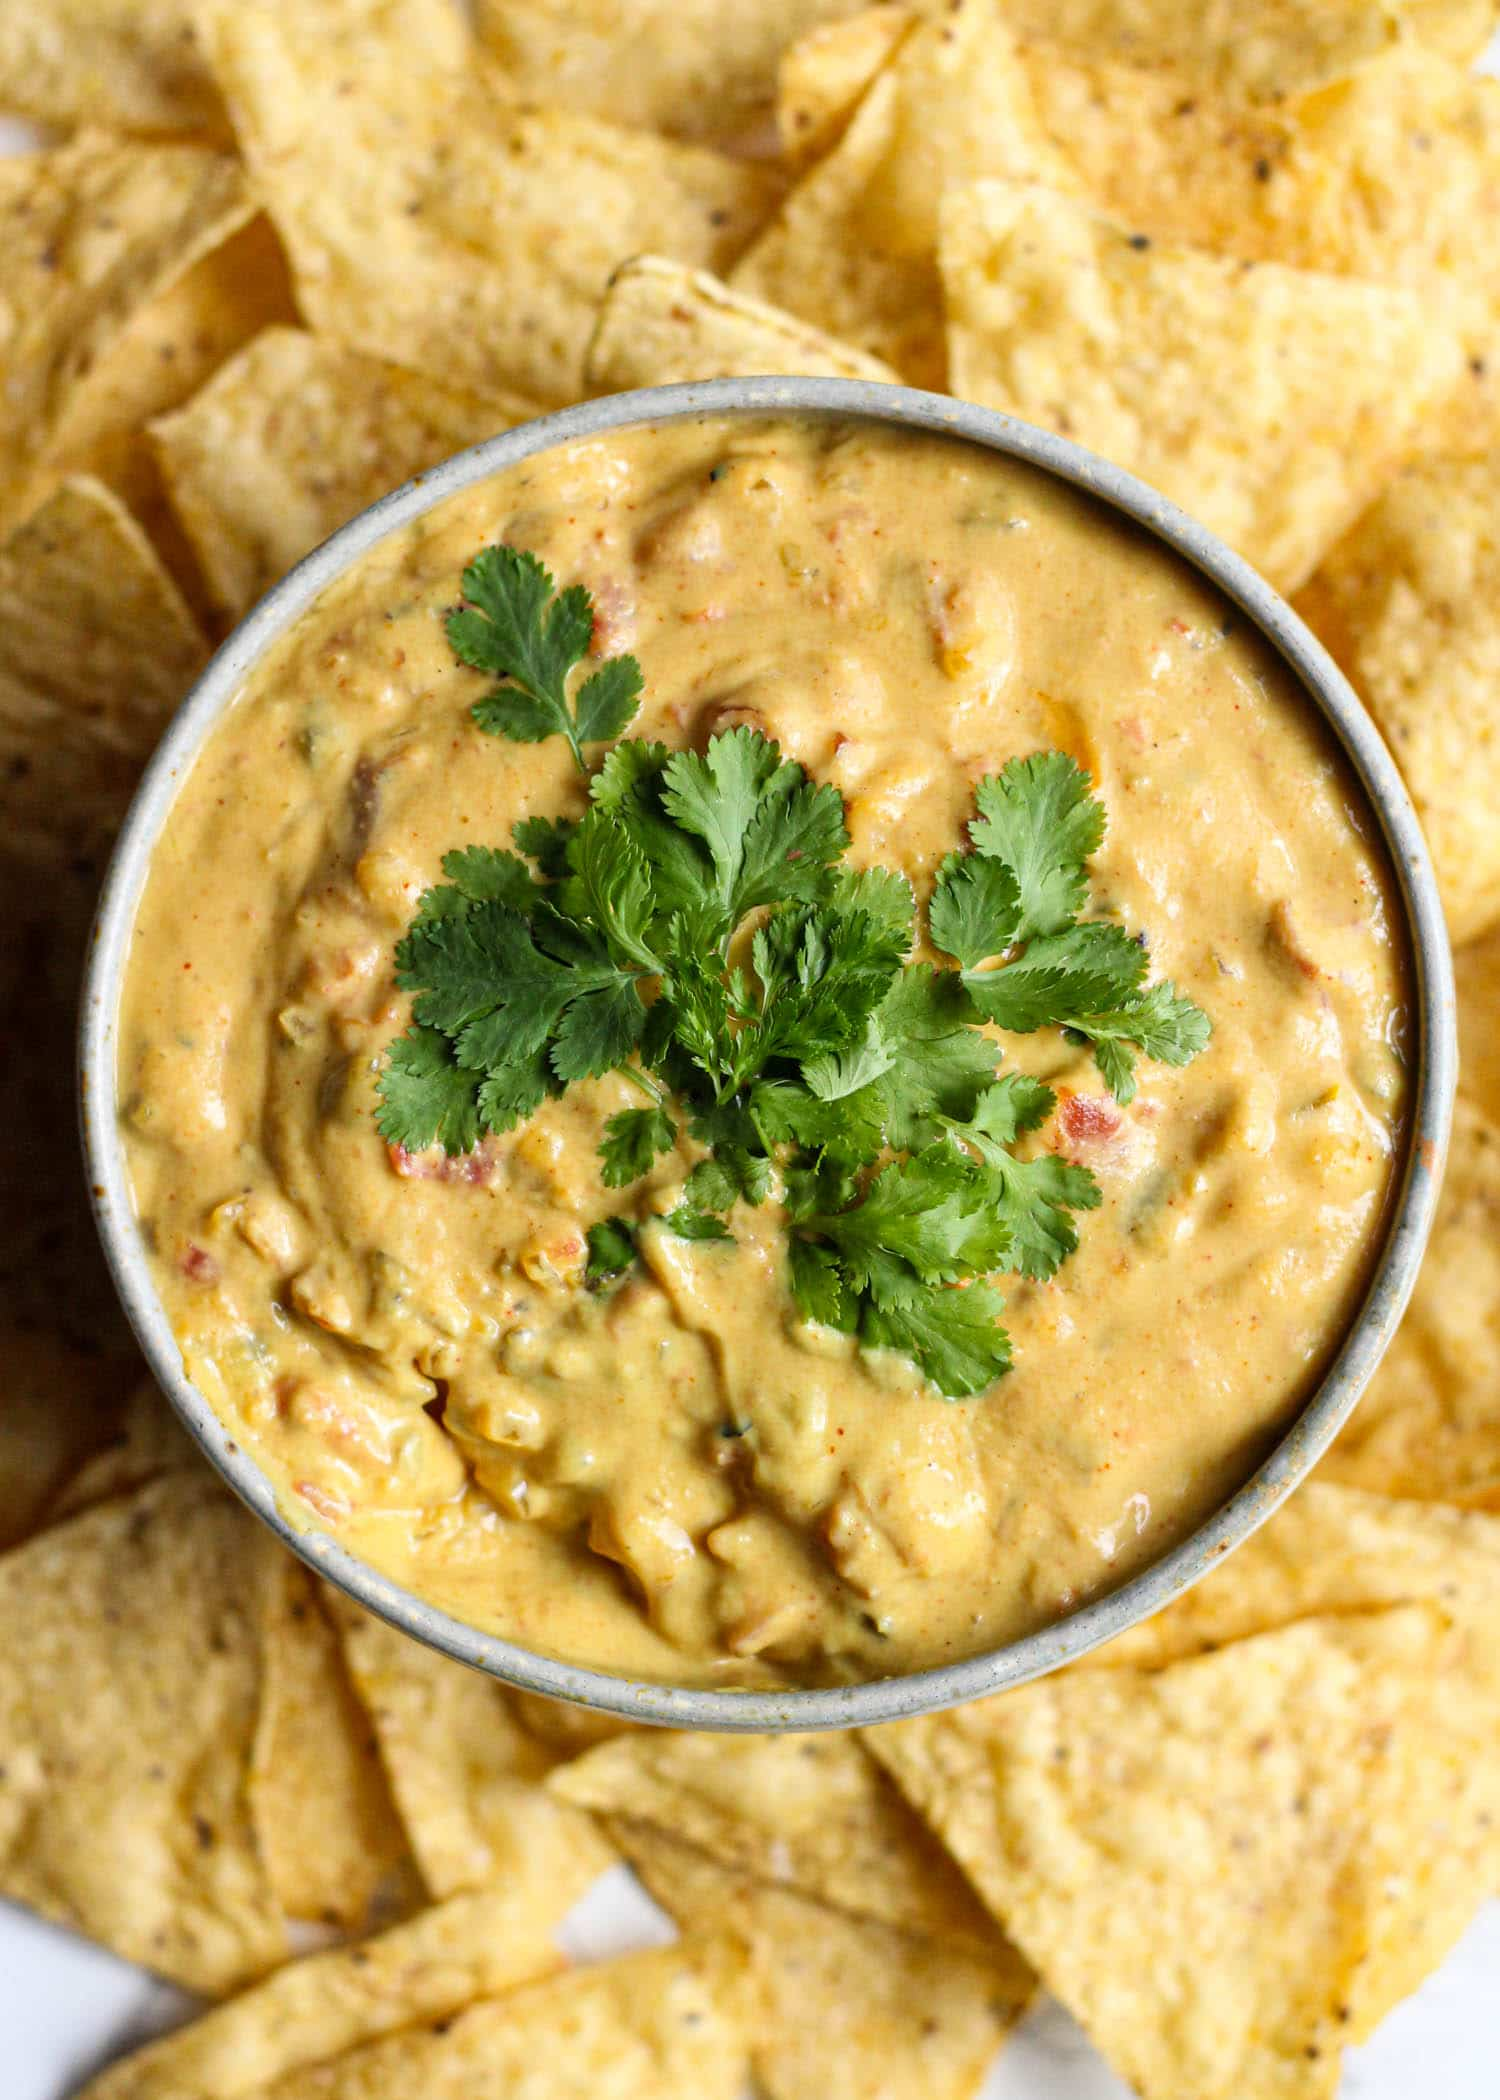 vegan nacho cheese in a bowl surrounded by tortilla chips